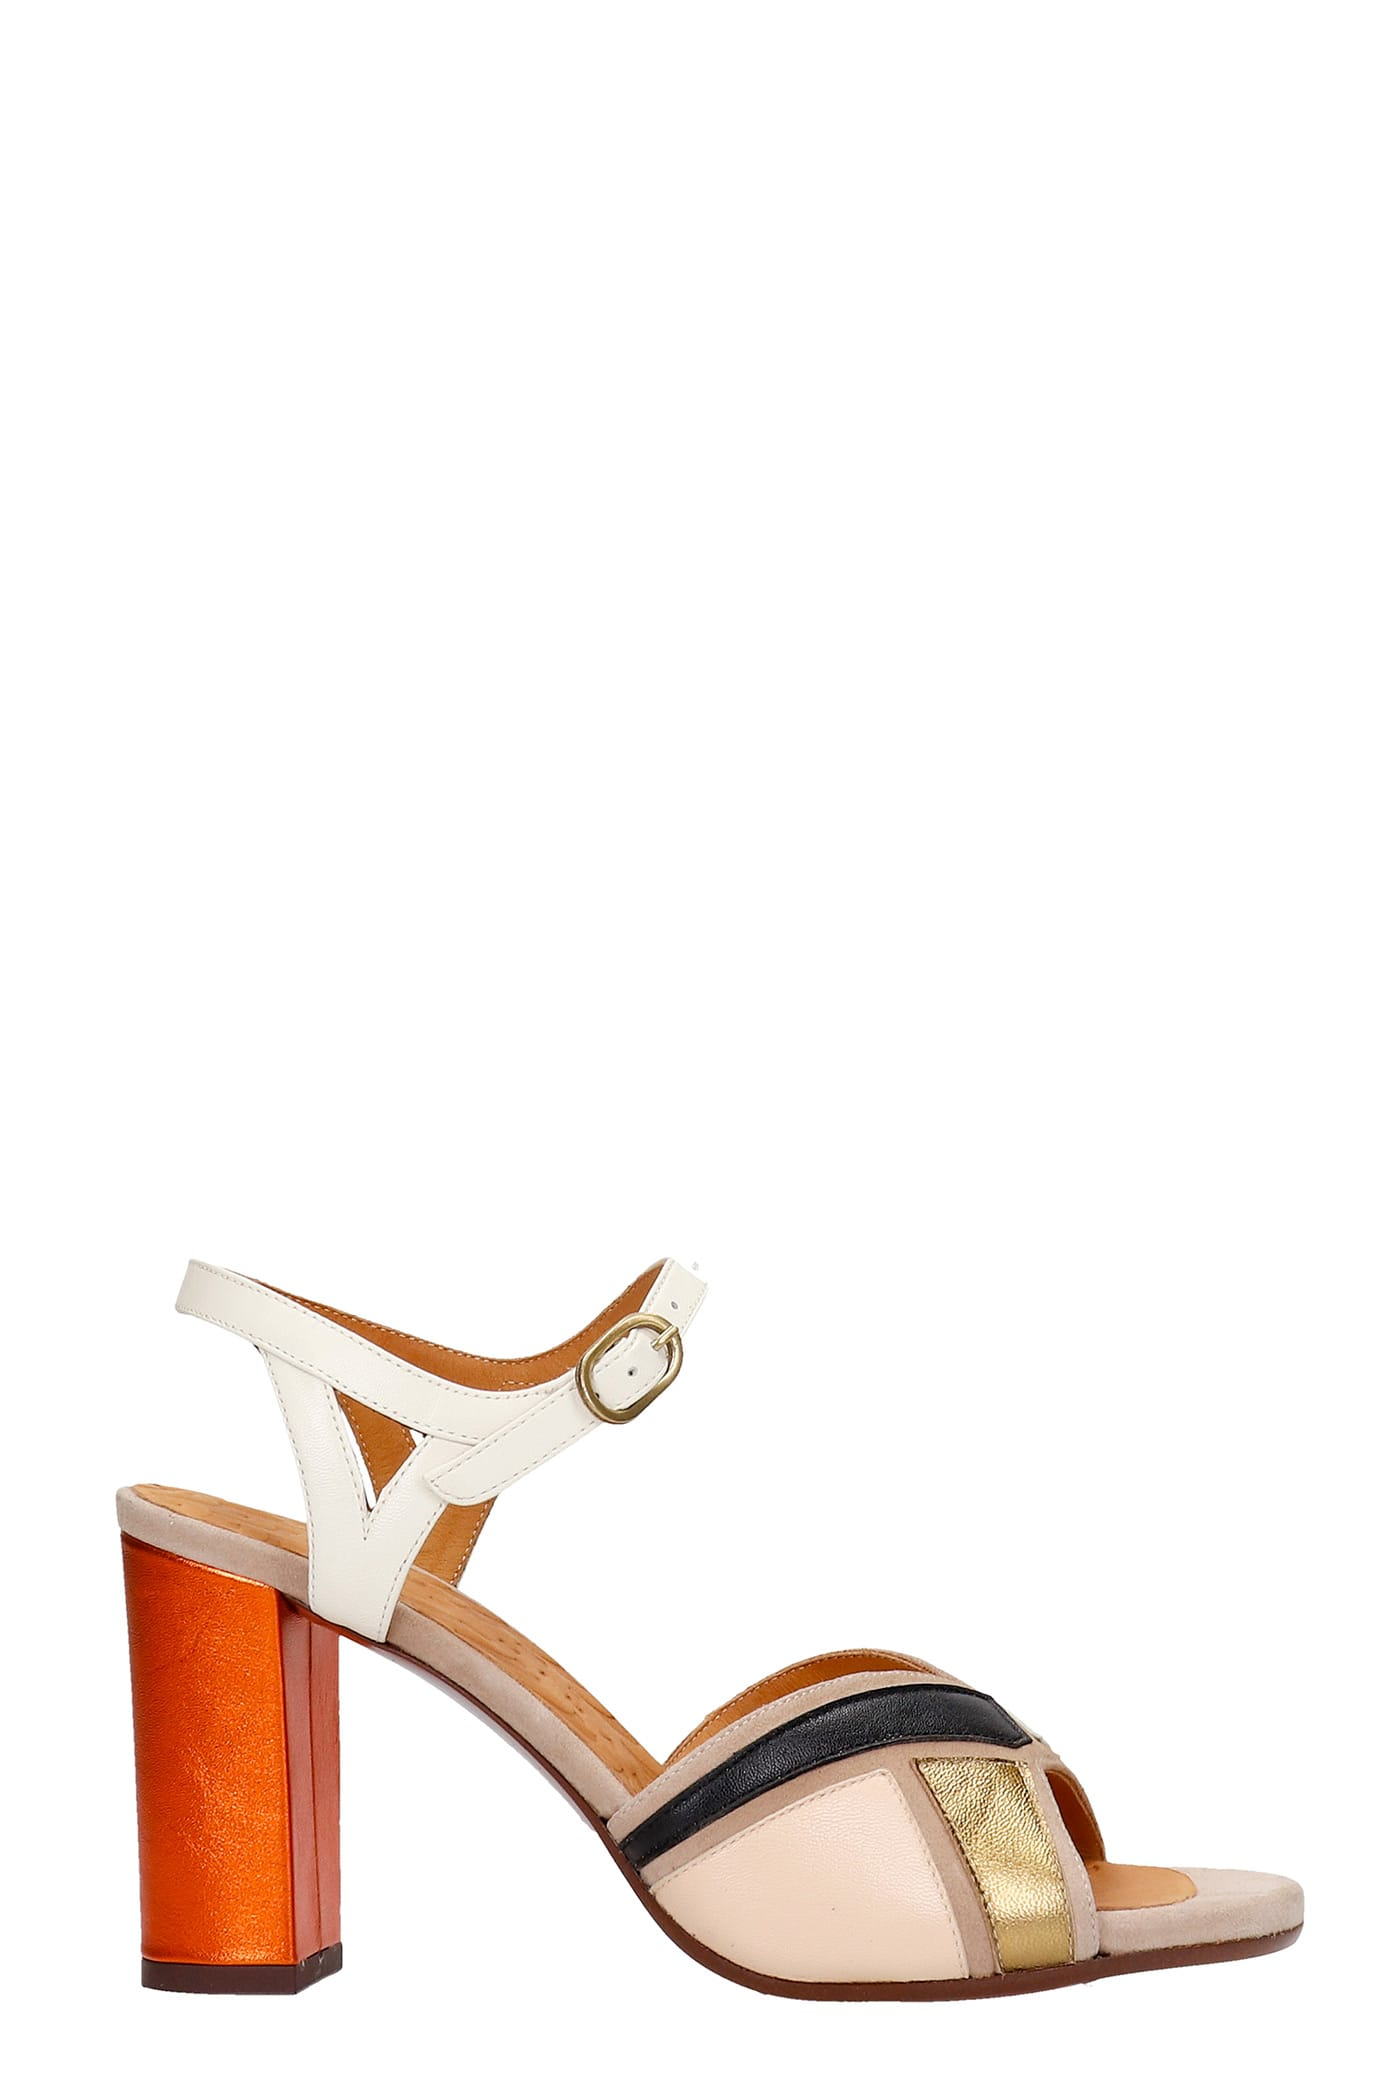 Chie Mihara BADRA SANDALS IN MULTICOLOR LEATHER